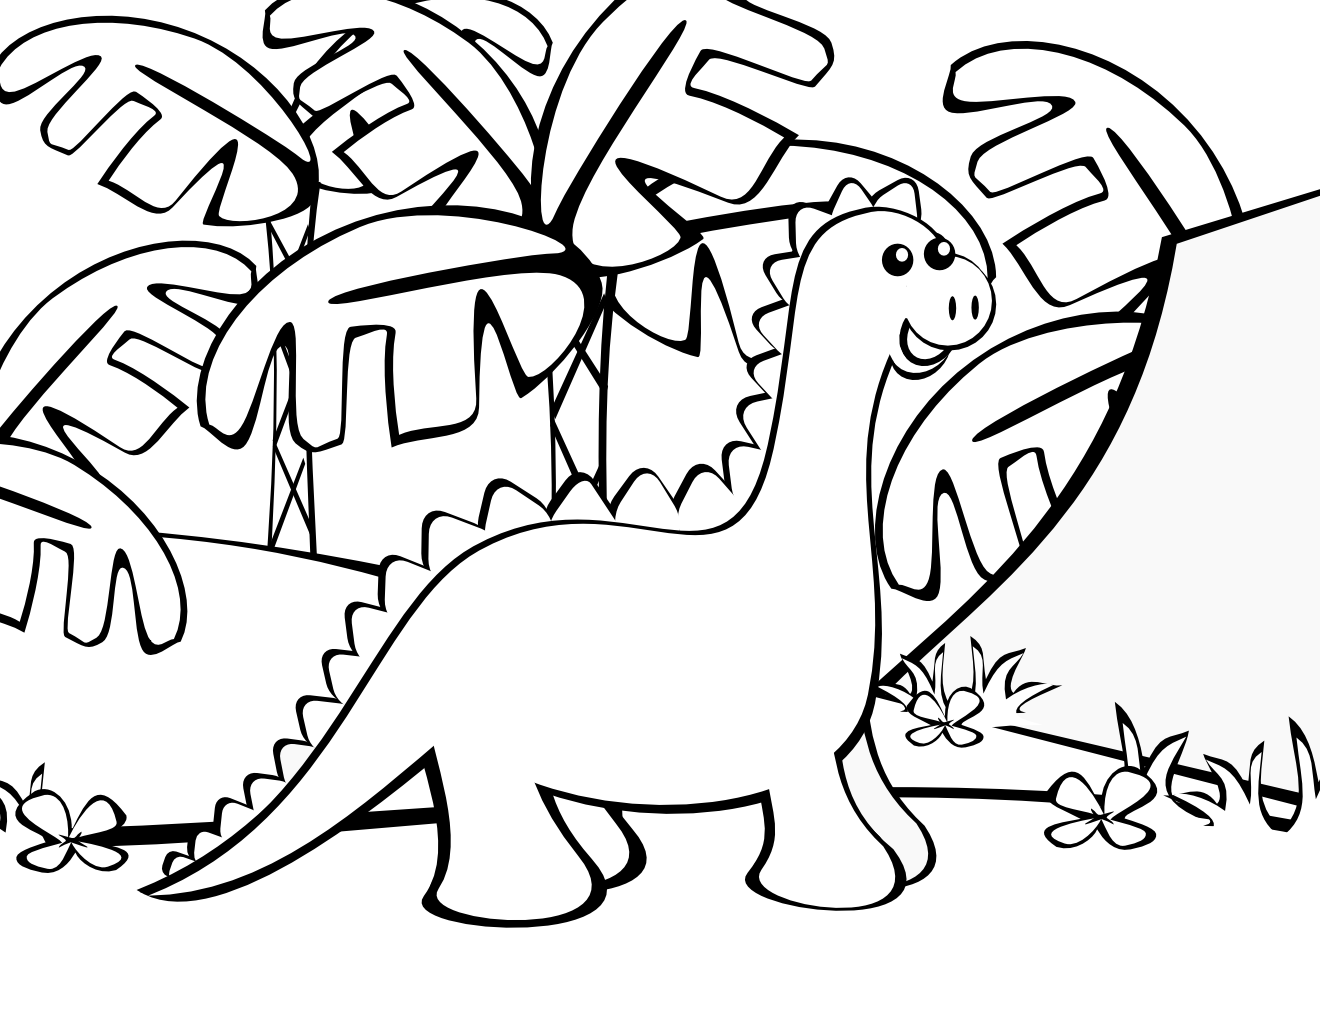 free printable dinosaur coloring pages printable coloring pages dinosaur coloring pages coloring printable free dinosaur pages